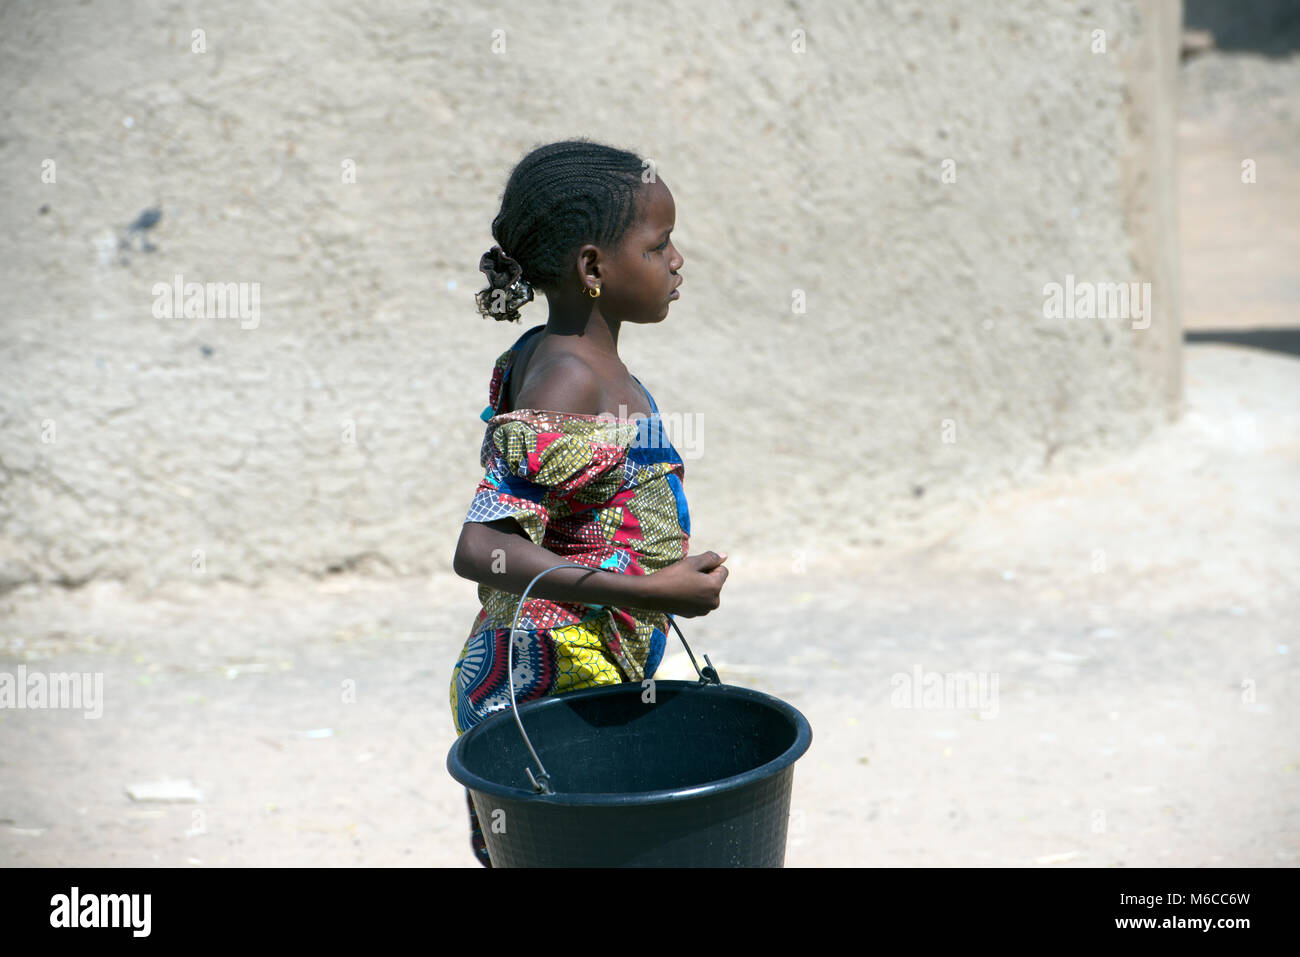 A young indigenous ethnic Fulani girl walking through her village carrying a bucket of water. Mali, West Africa. - Stock Image